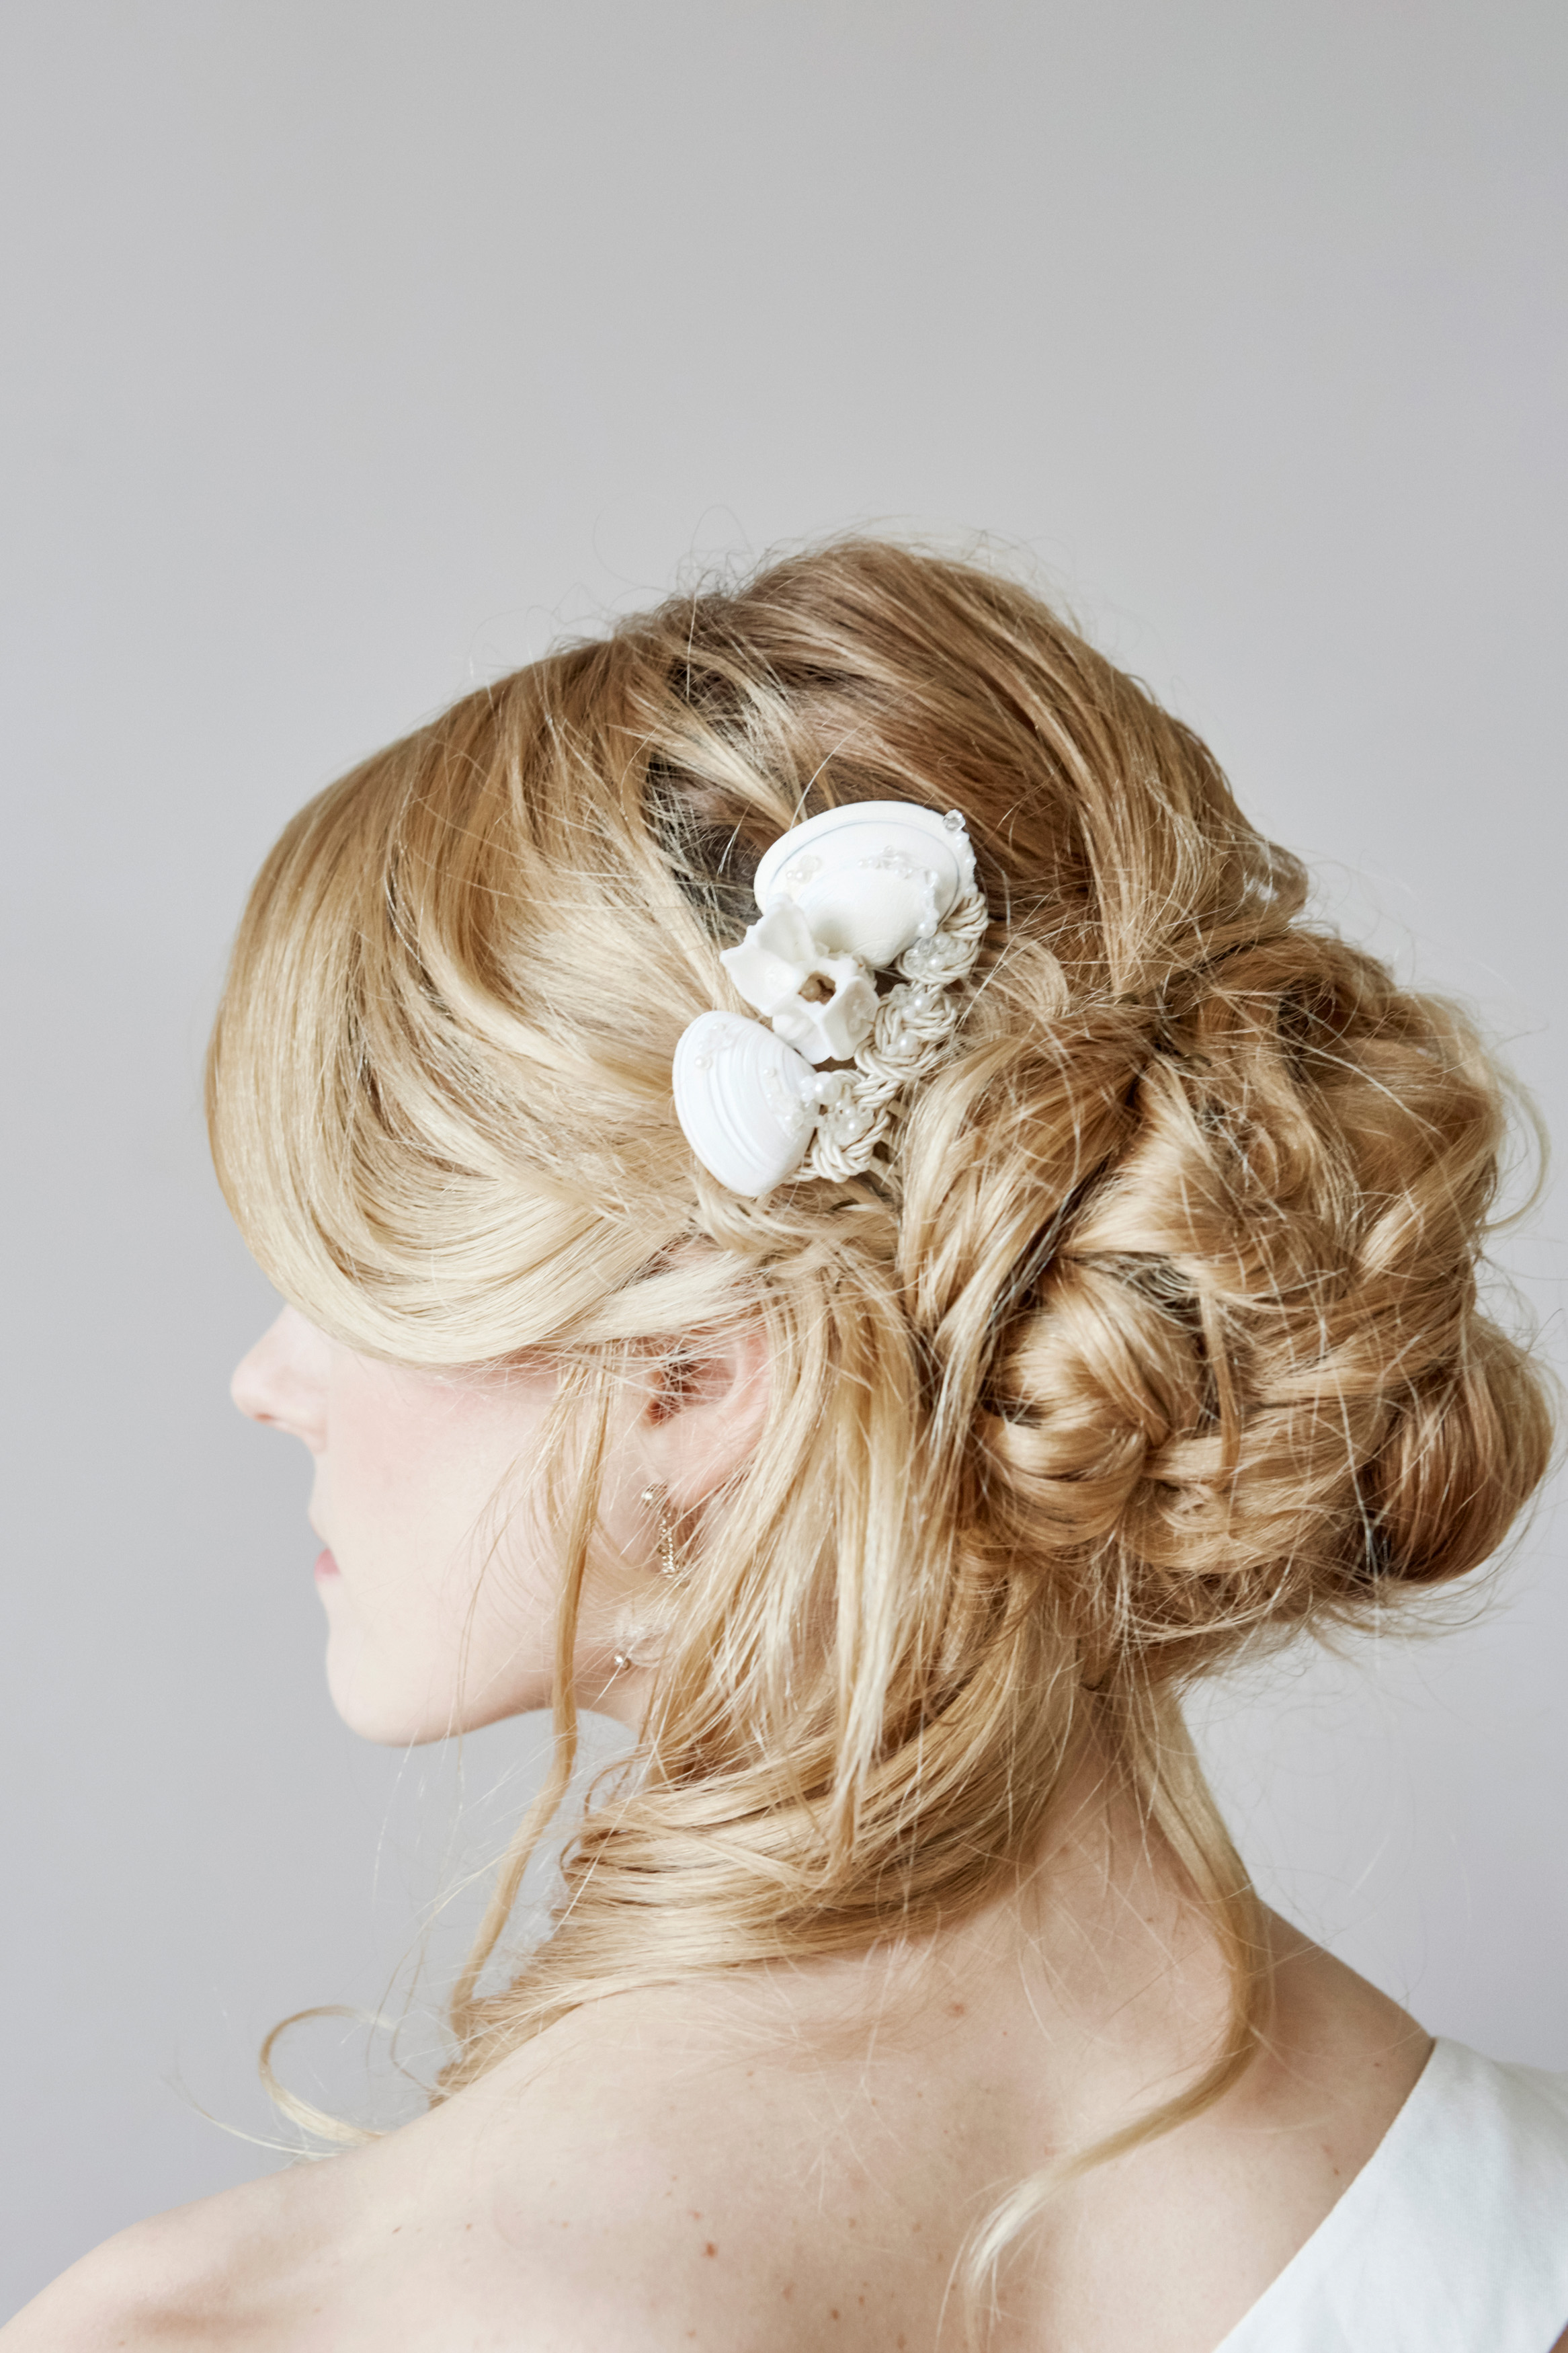 bridal hair comb made from shells by j&t accessories, french normandy wedding